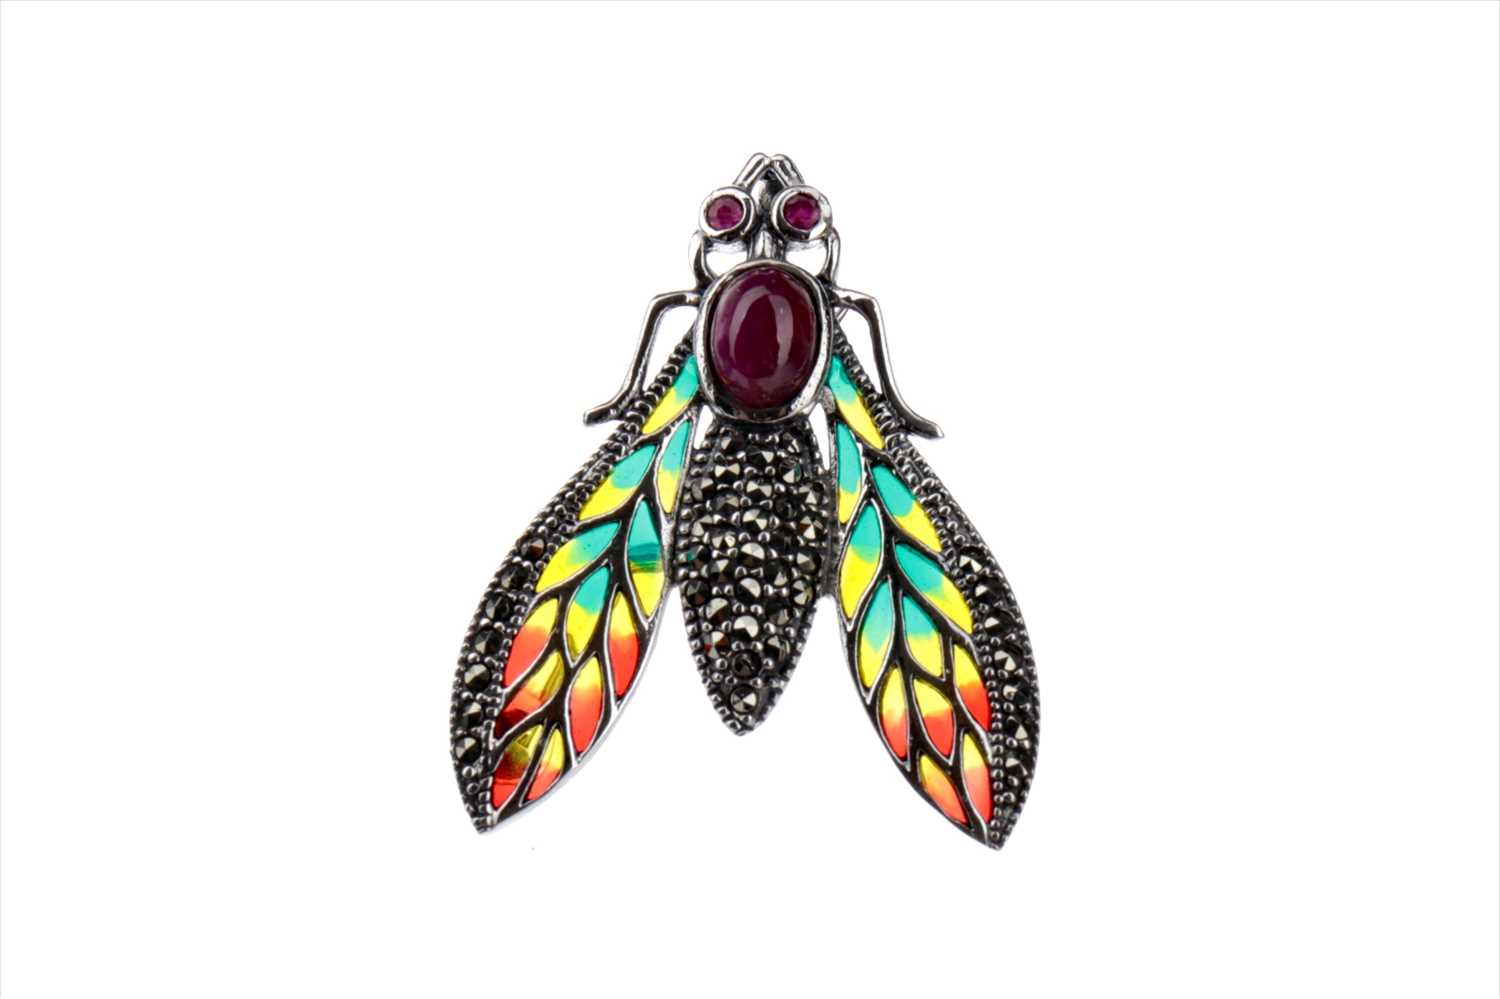 Lot 907 - A PLIQUE-A-JOUR FLY BROOCH